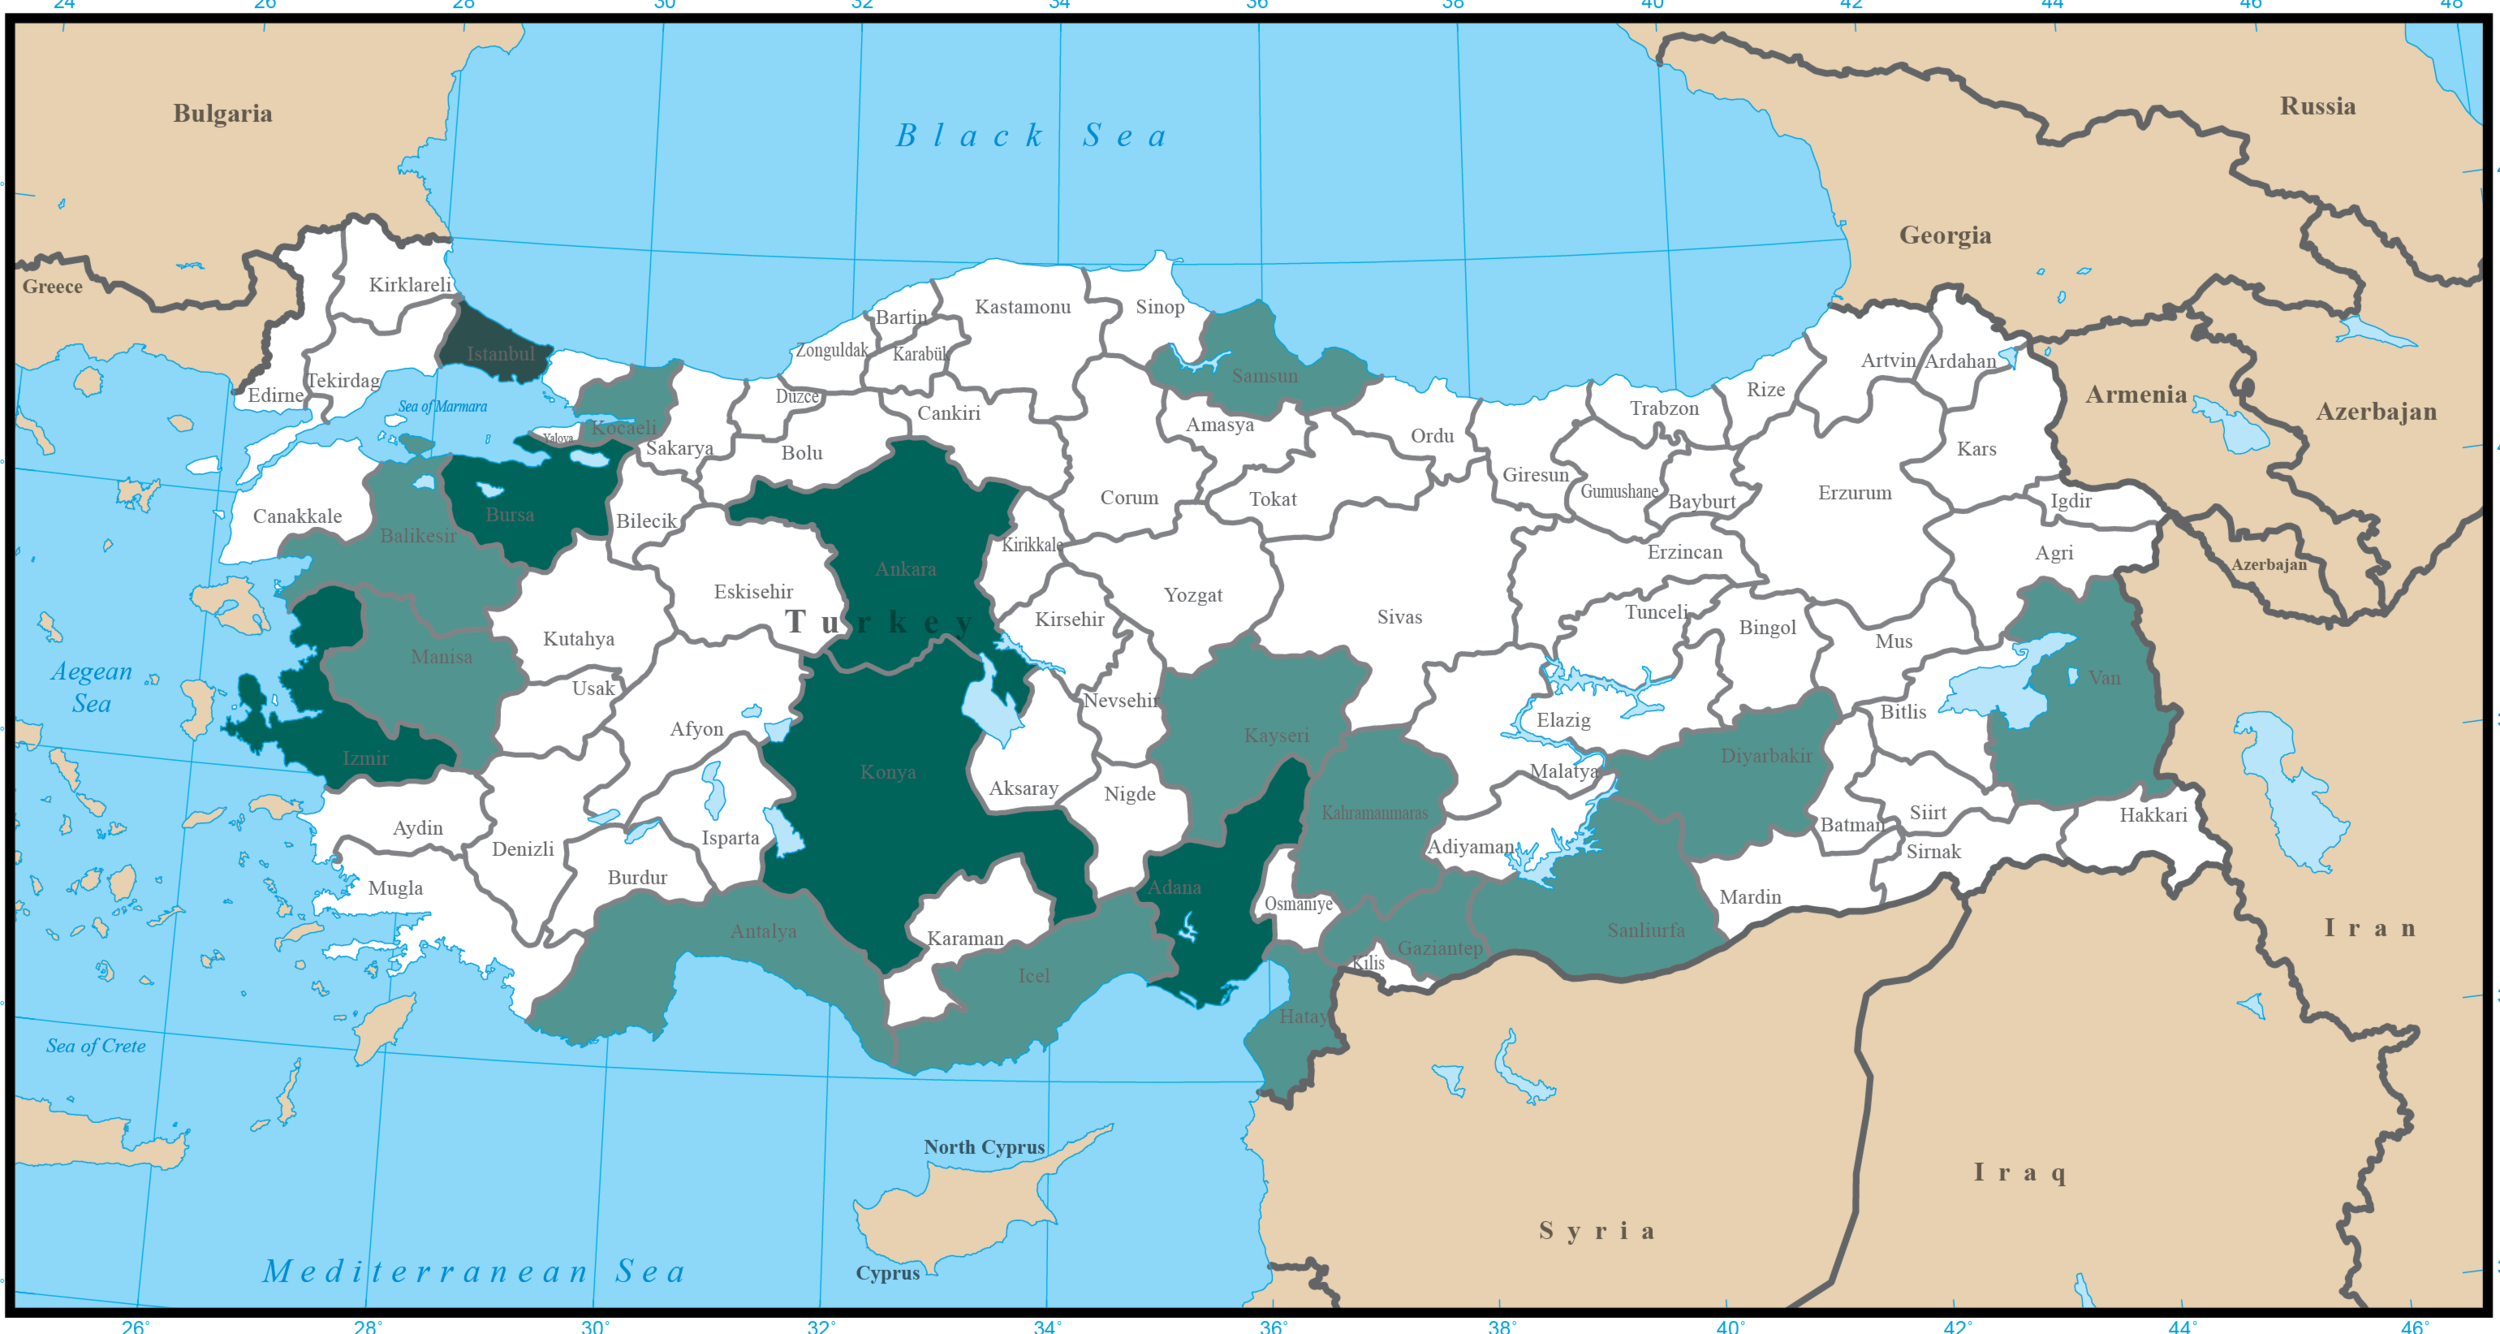 Map 1. Population by Province.  White: Under 1 million. Light green, over 1 million. Medium green, over 2 million. Dark green (1 province, Istanbul): over 10 million.  Over 20% of Turkey's population is in the small northwest province of Istanbul .